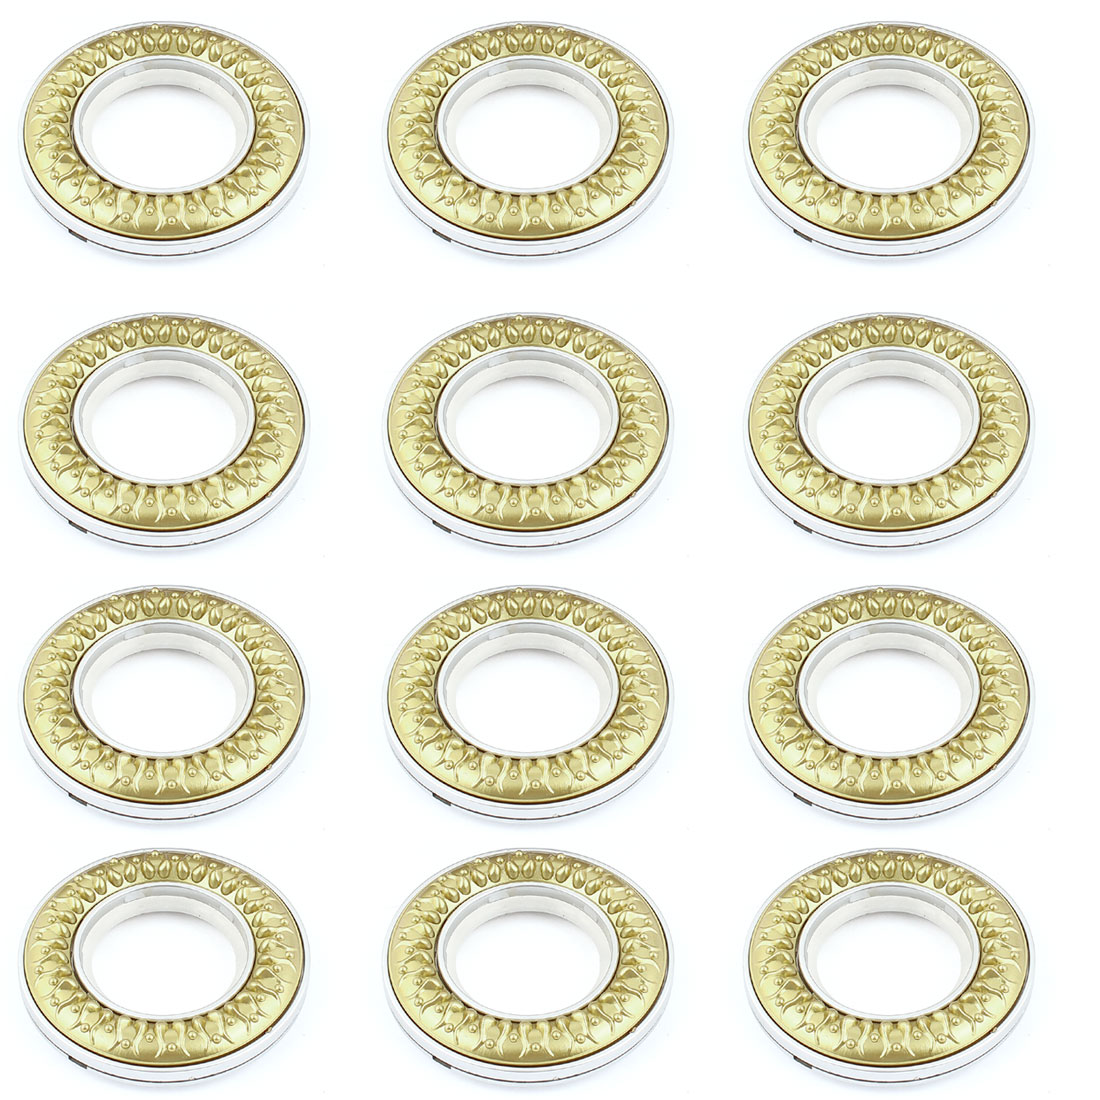 12 Pcs 41mm Inner Dia Silver Gold Tone Plastic Curtain Rings